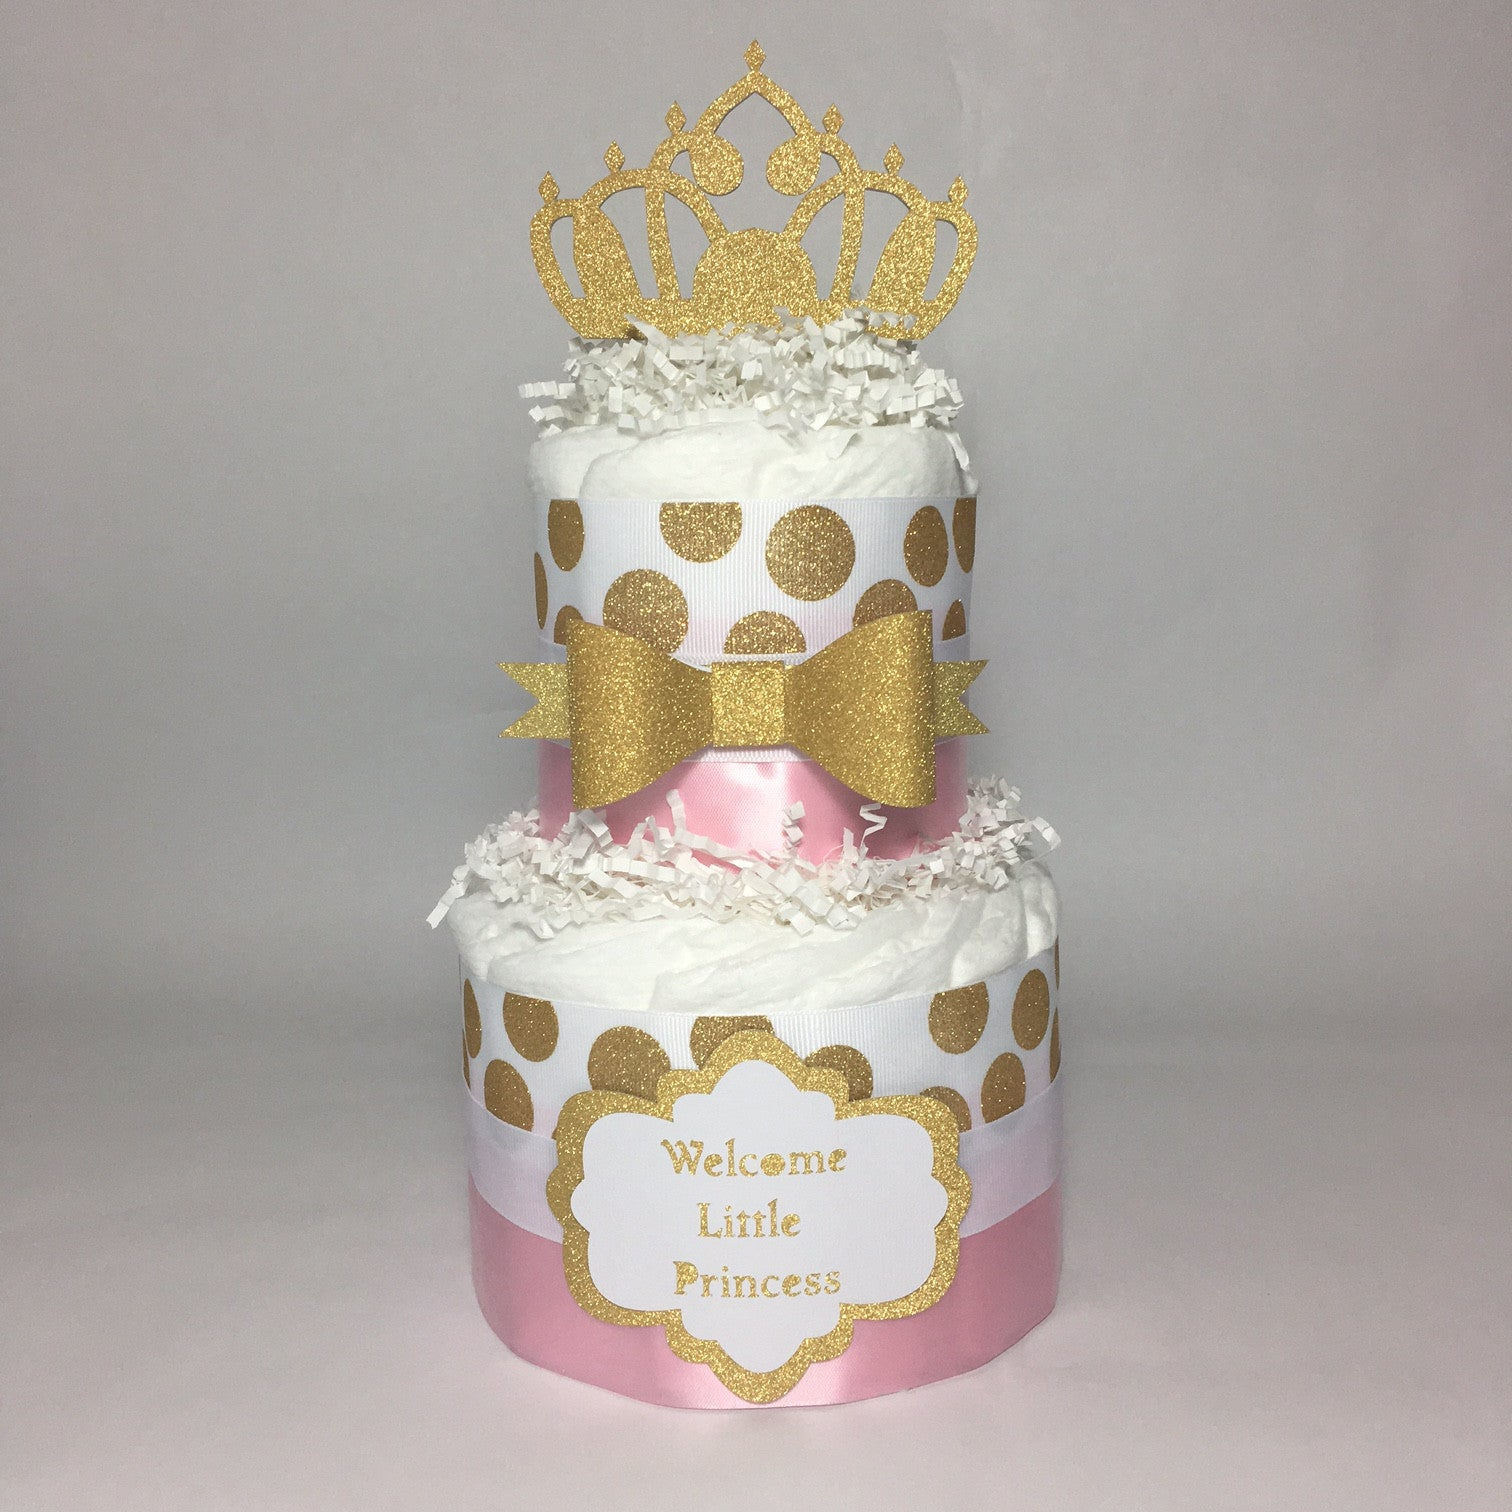 Little Princess Royal Diaper Cake, Pink Gold